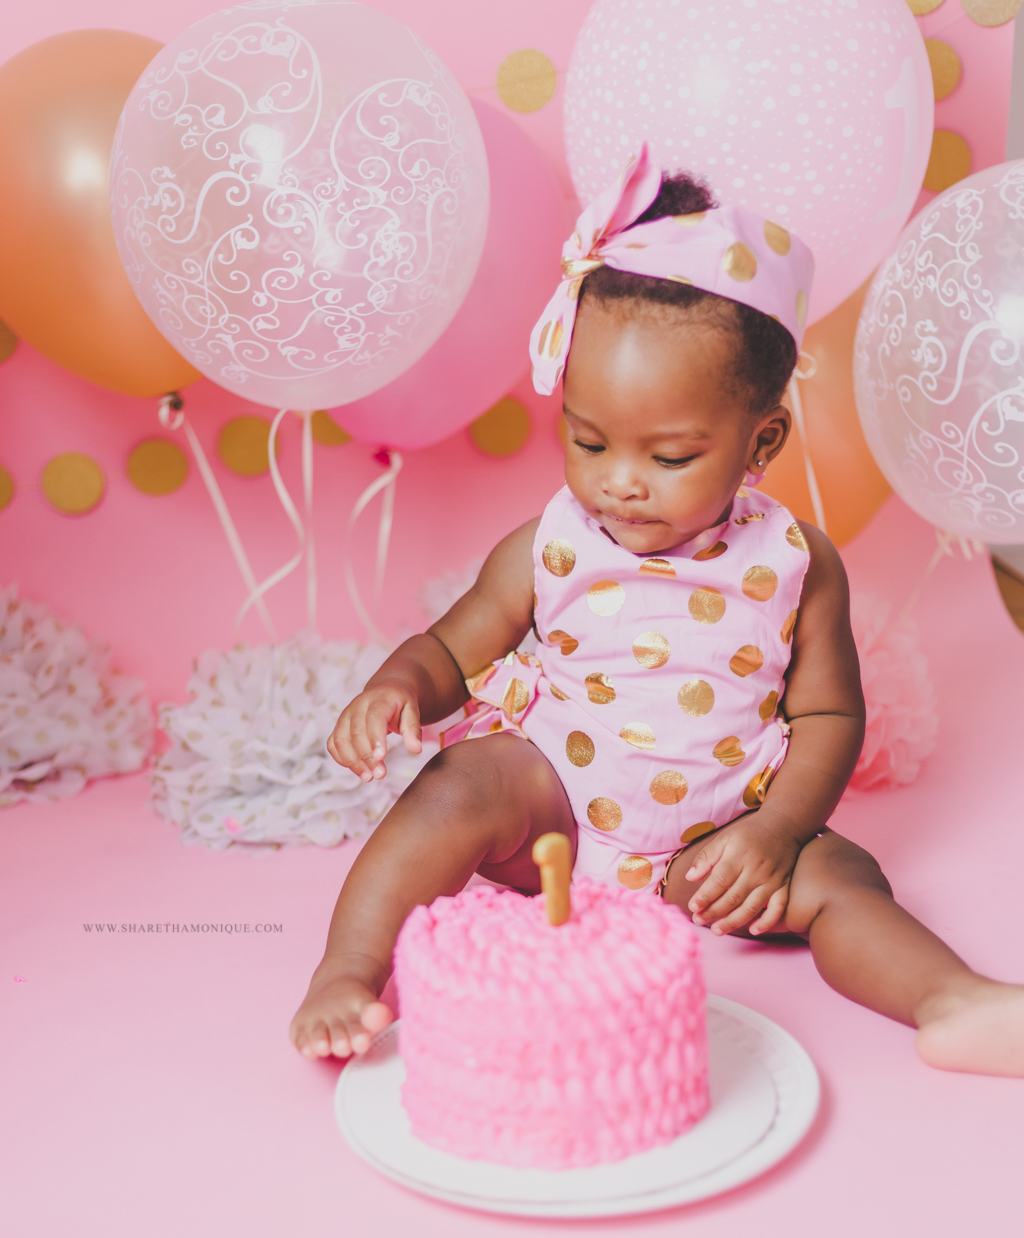 Charlotte Baby Cake Smash - One Year Birthday-11.jpg